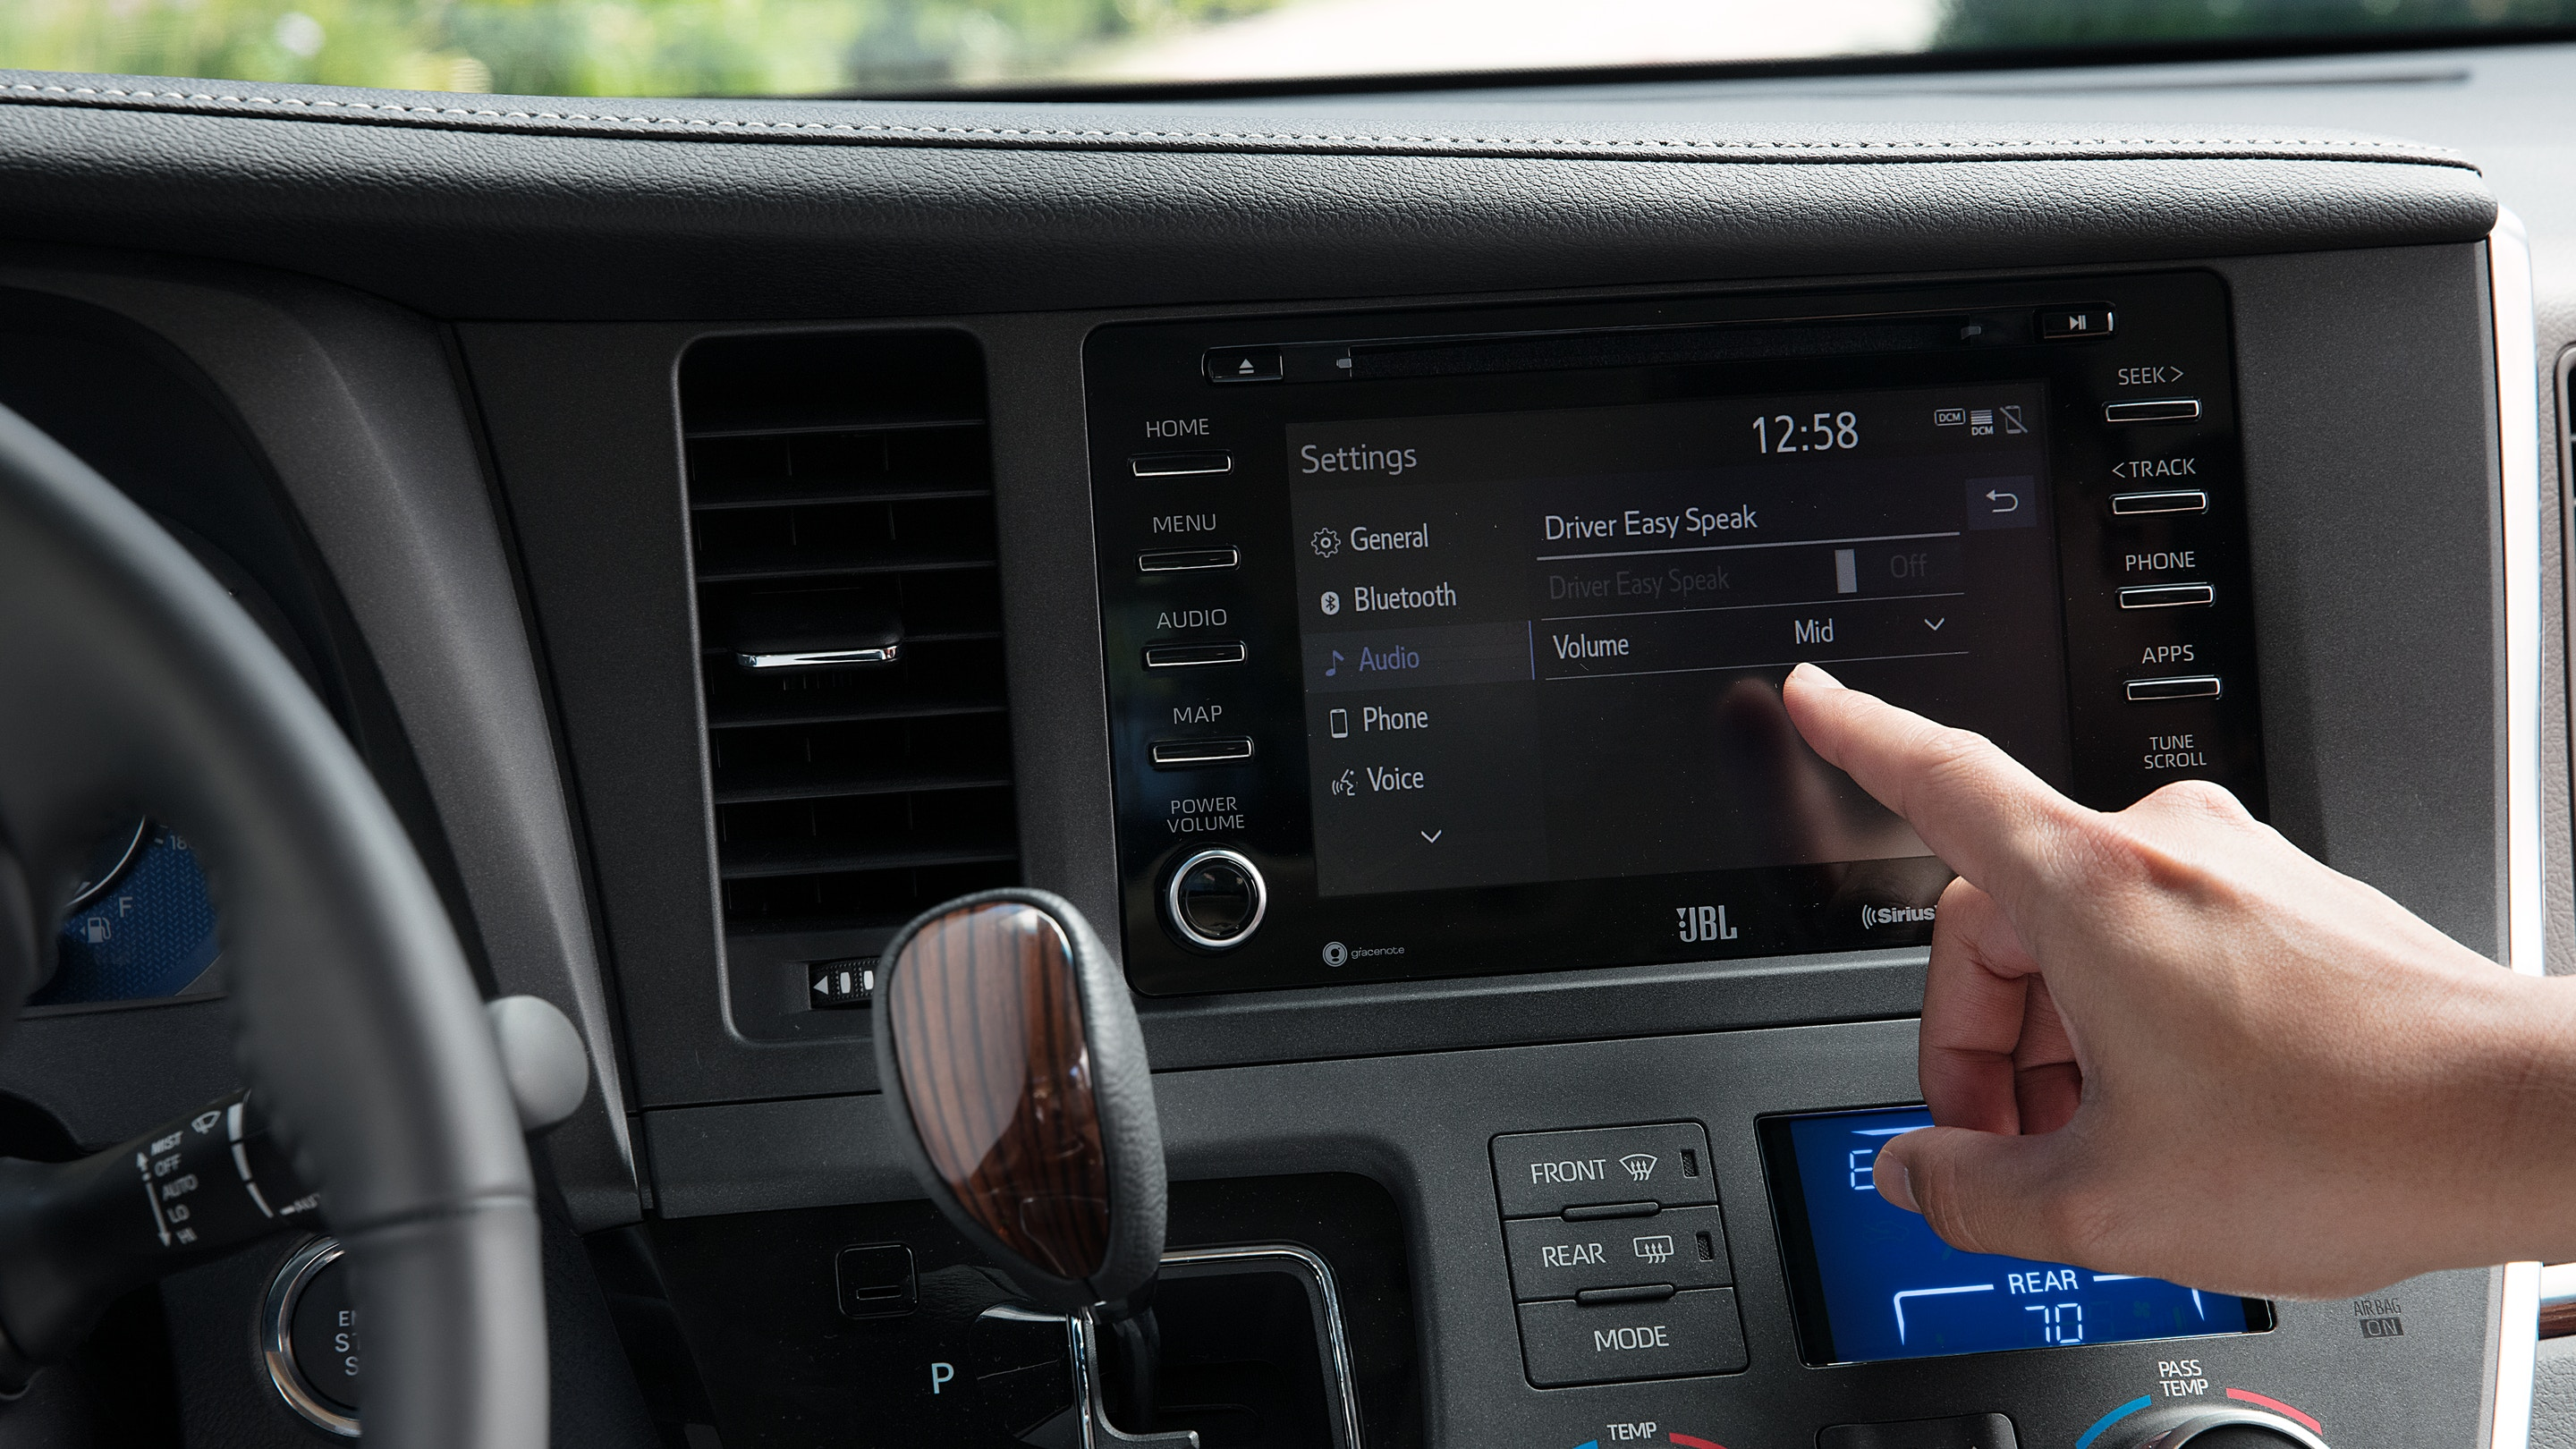 Touchscreen in the 2020 Sienna